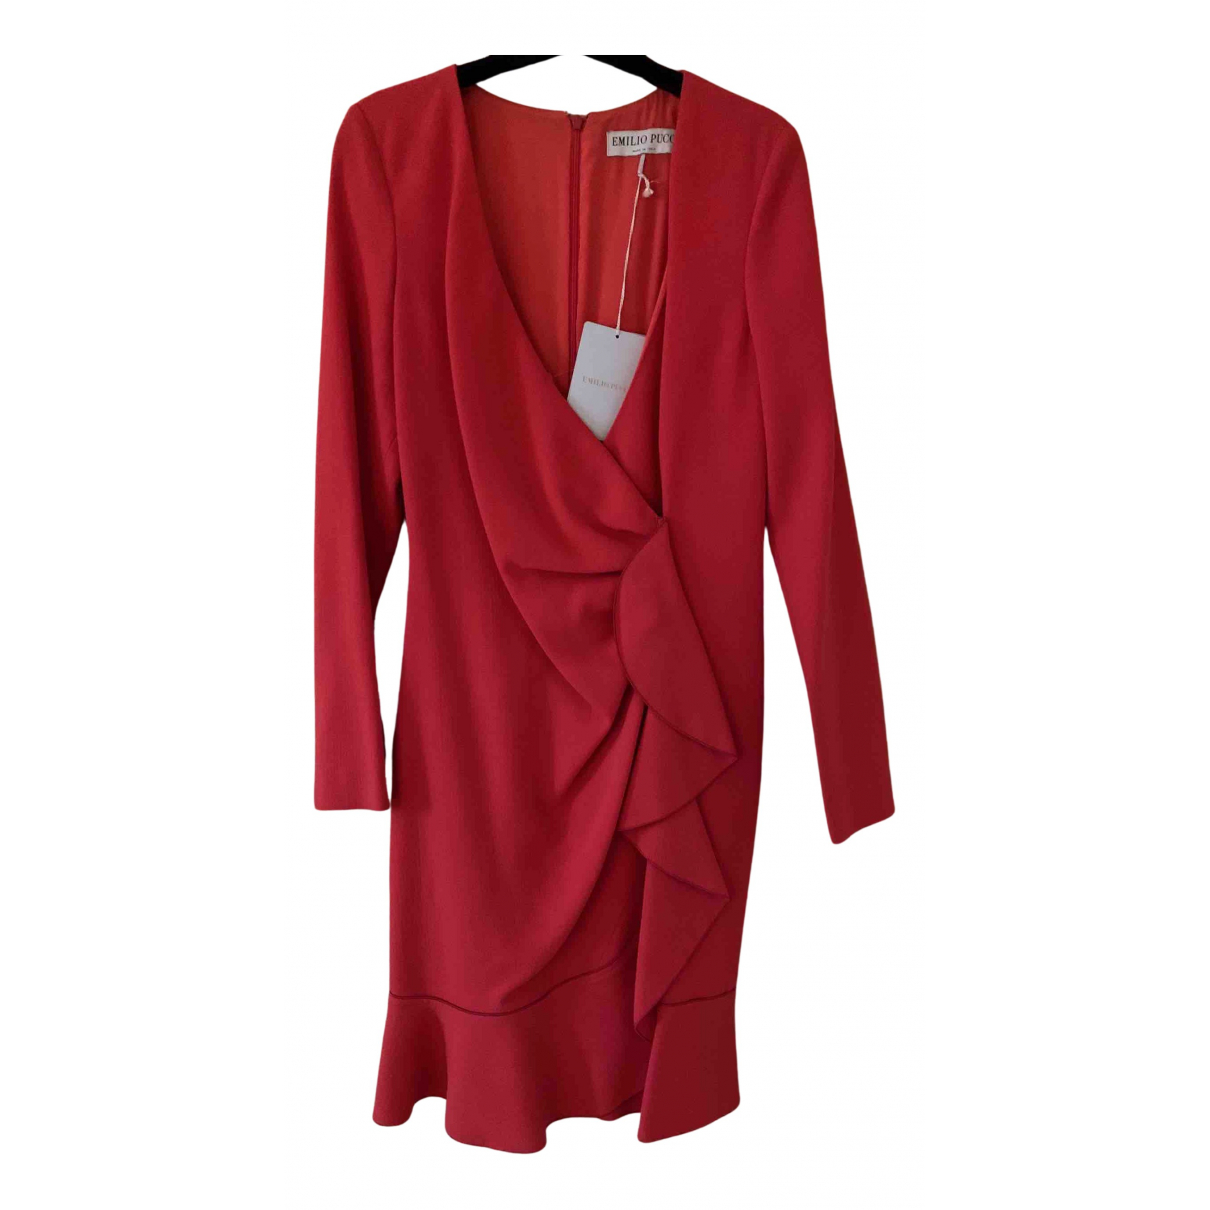 Emilio Pucci N Red Wool dress for Women 40 IT